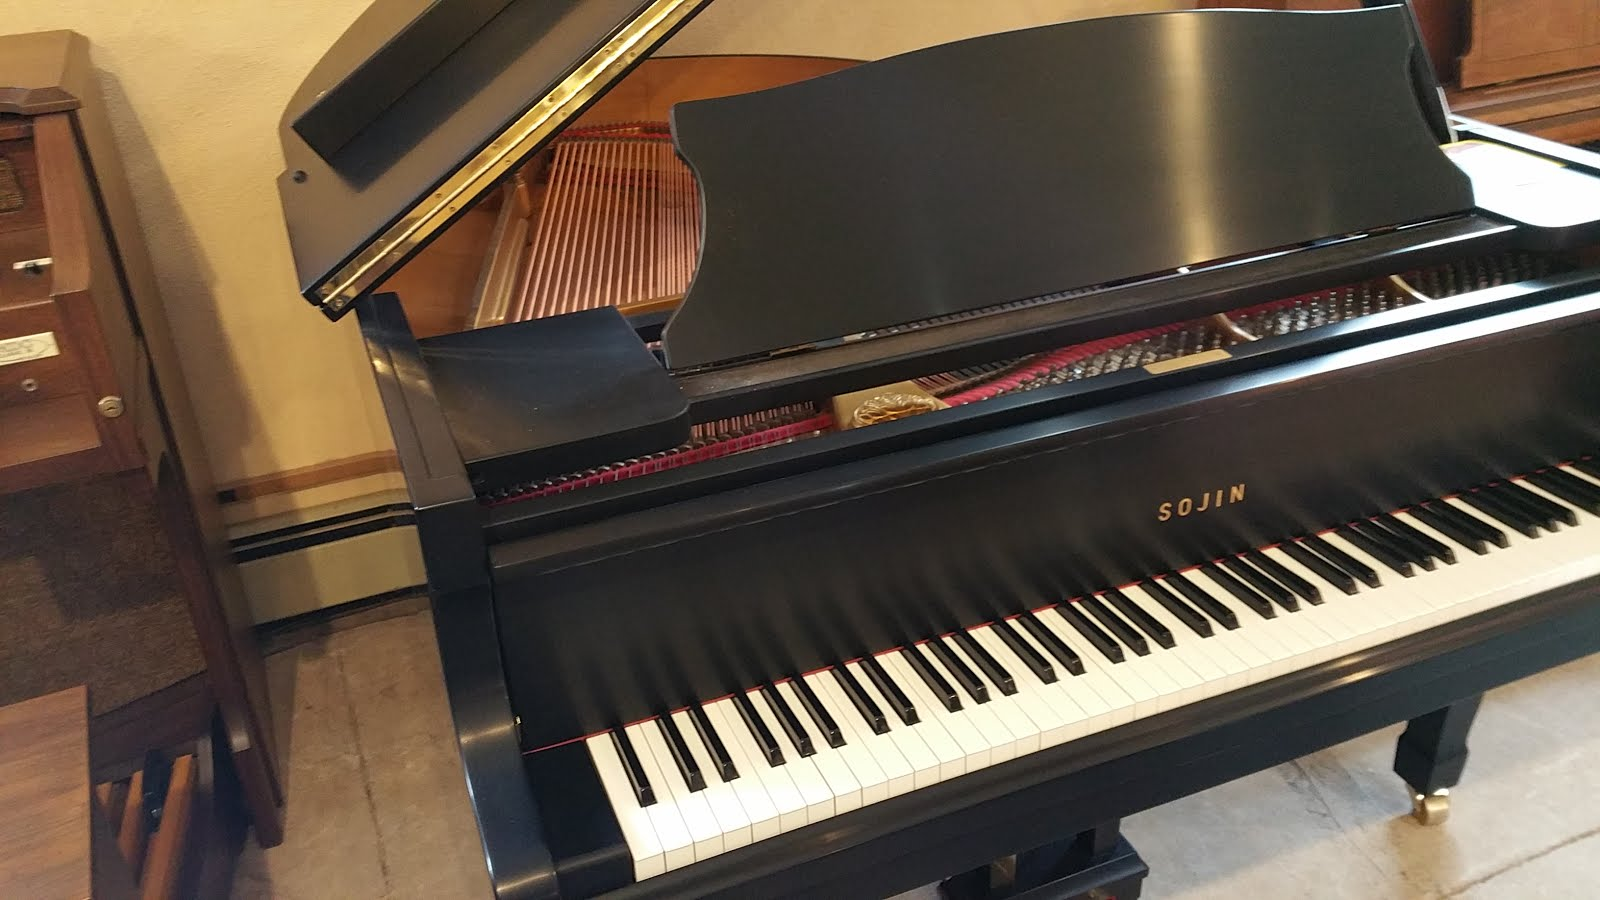 used sojin 5 39 2 baby grand piano used pianos and keyboards. Black Bedroom Furniture Sets. Home Design Ideas